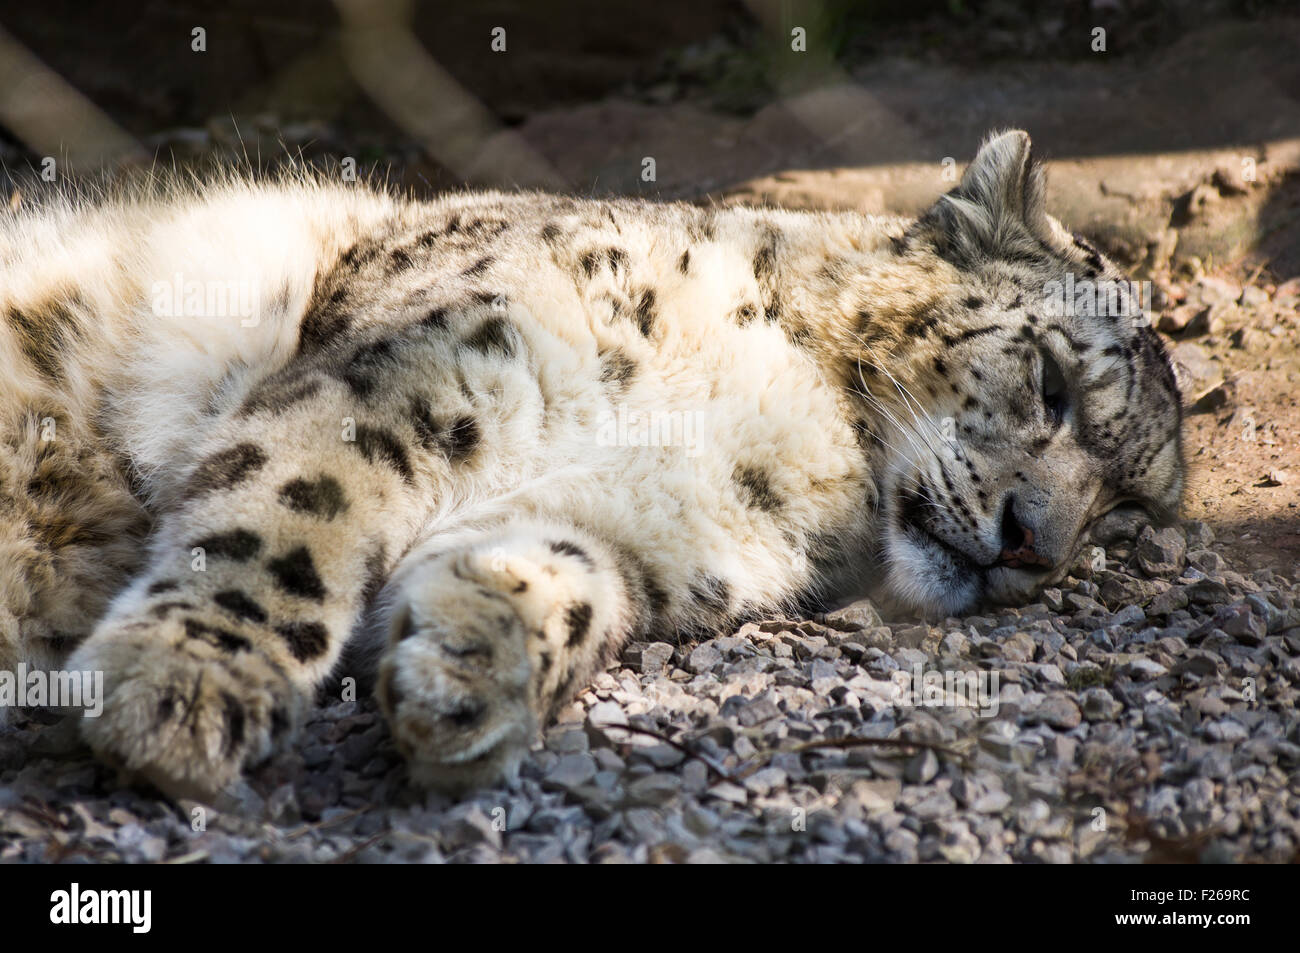 A snoozing Snow Leopard - Stock Image